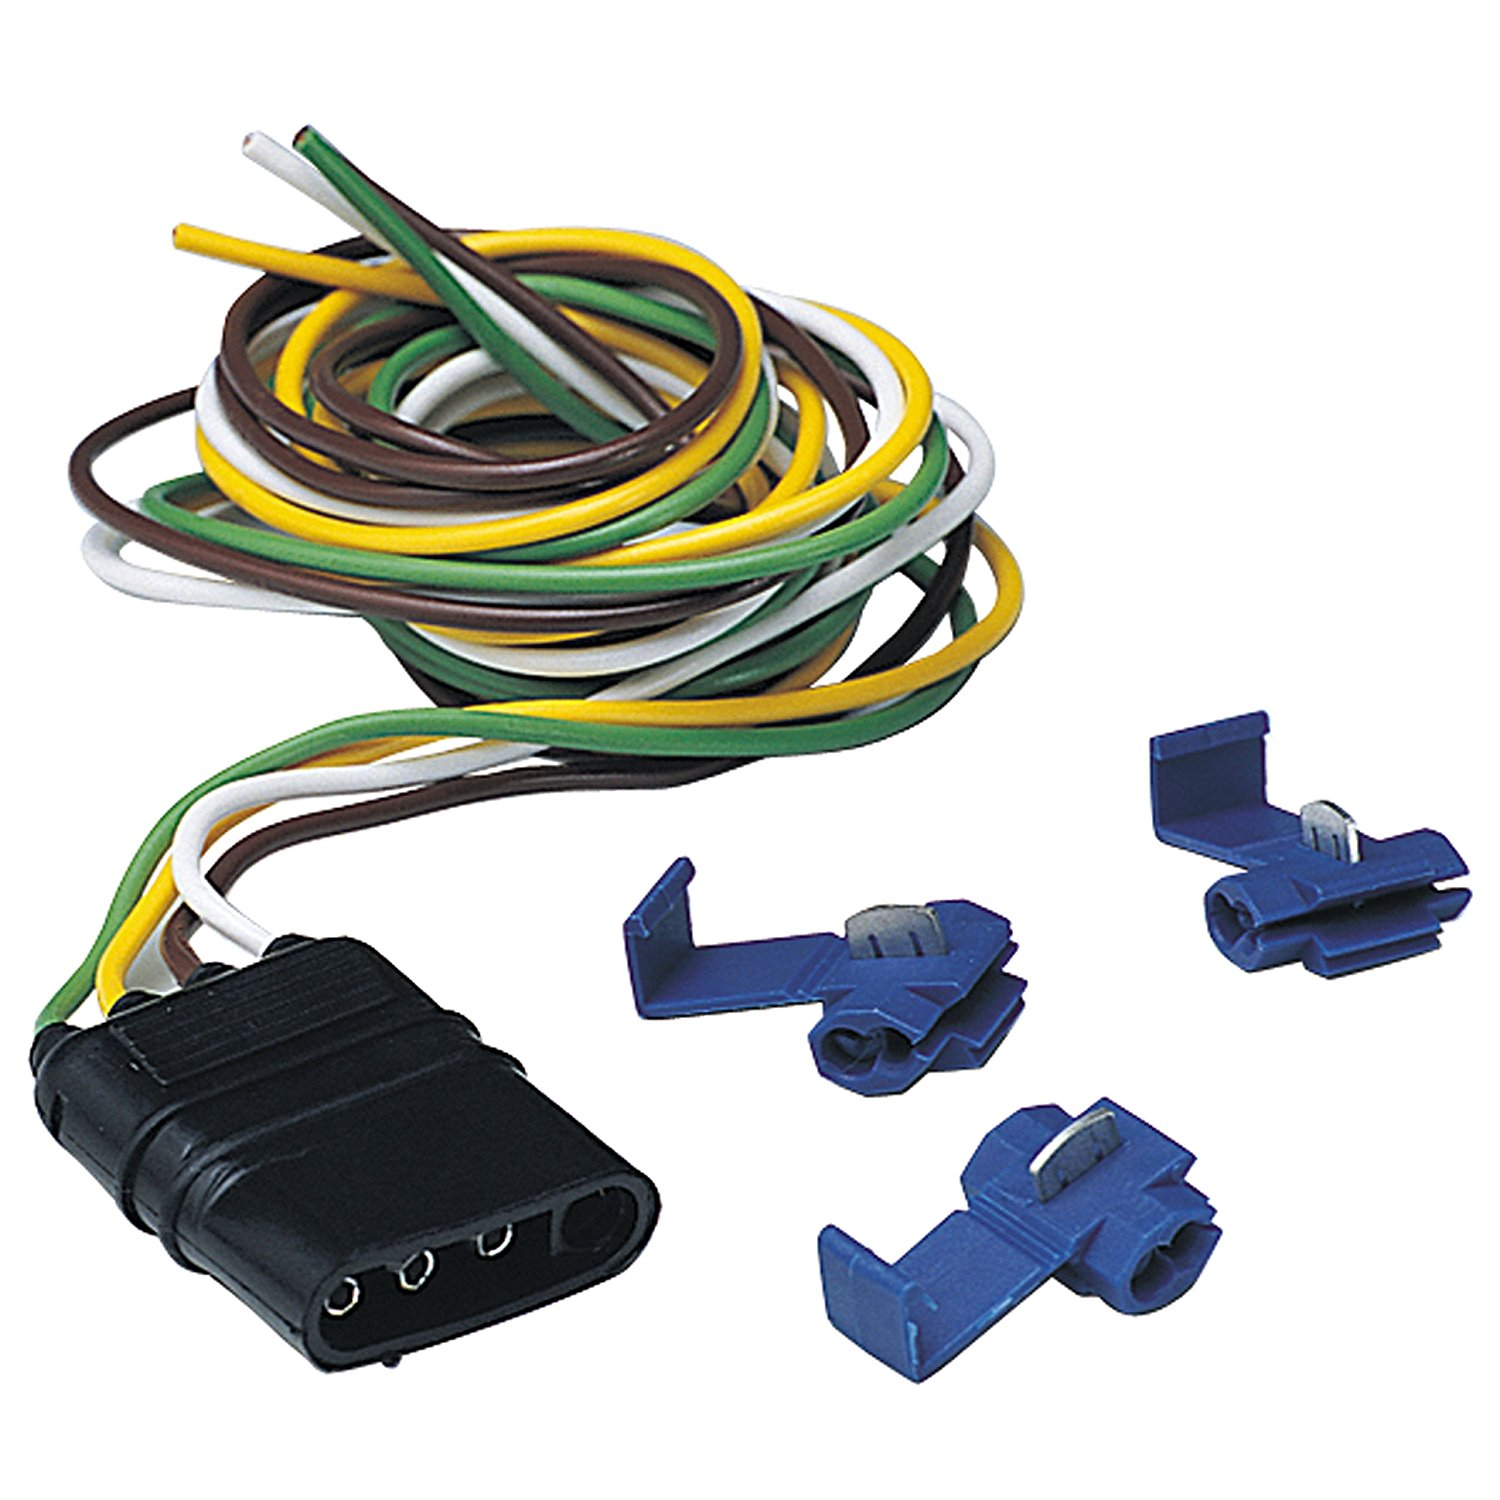 medium resolution of wire flat trailer end connector hopkins towing hitch wiring blog 47915 5 wire flat trailer end connector hopkins towing trailer hitches